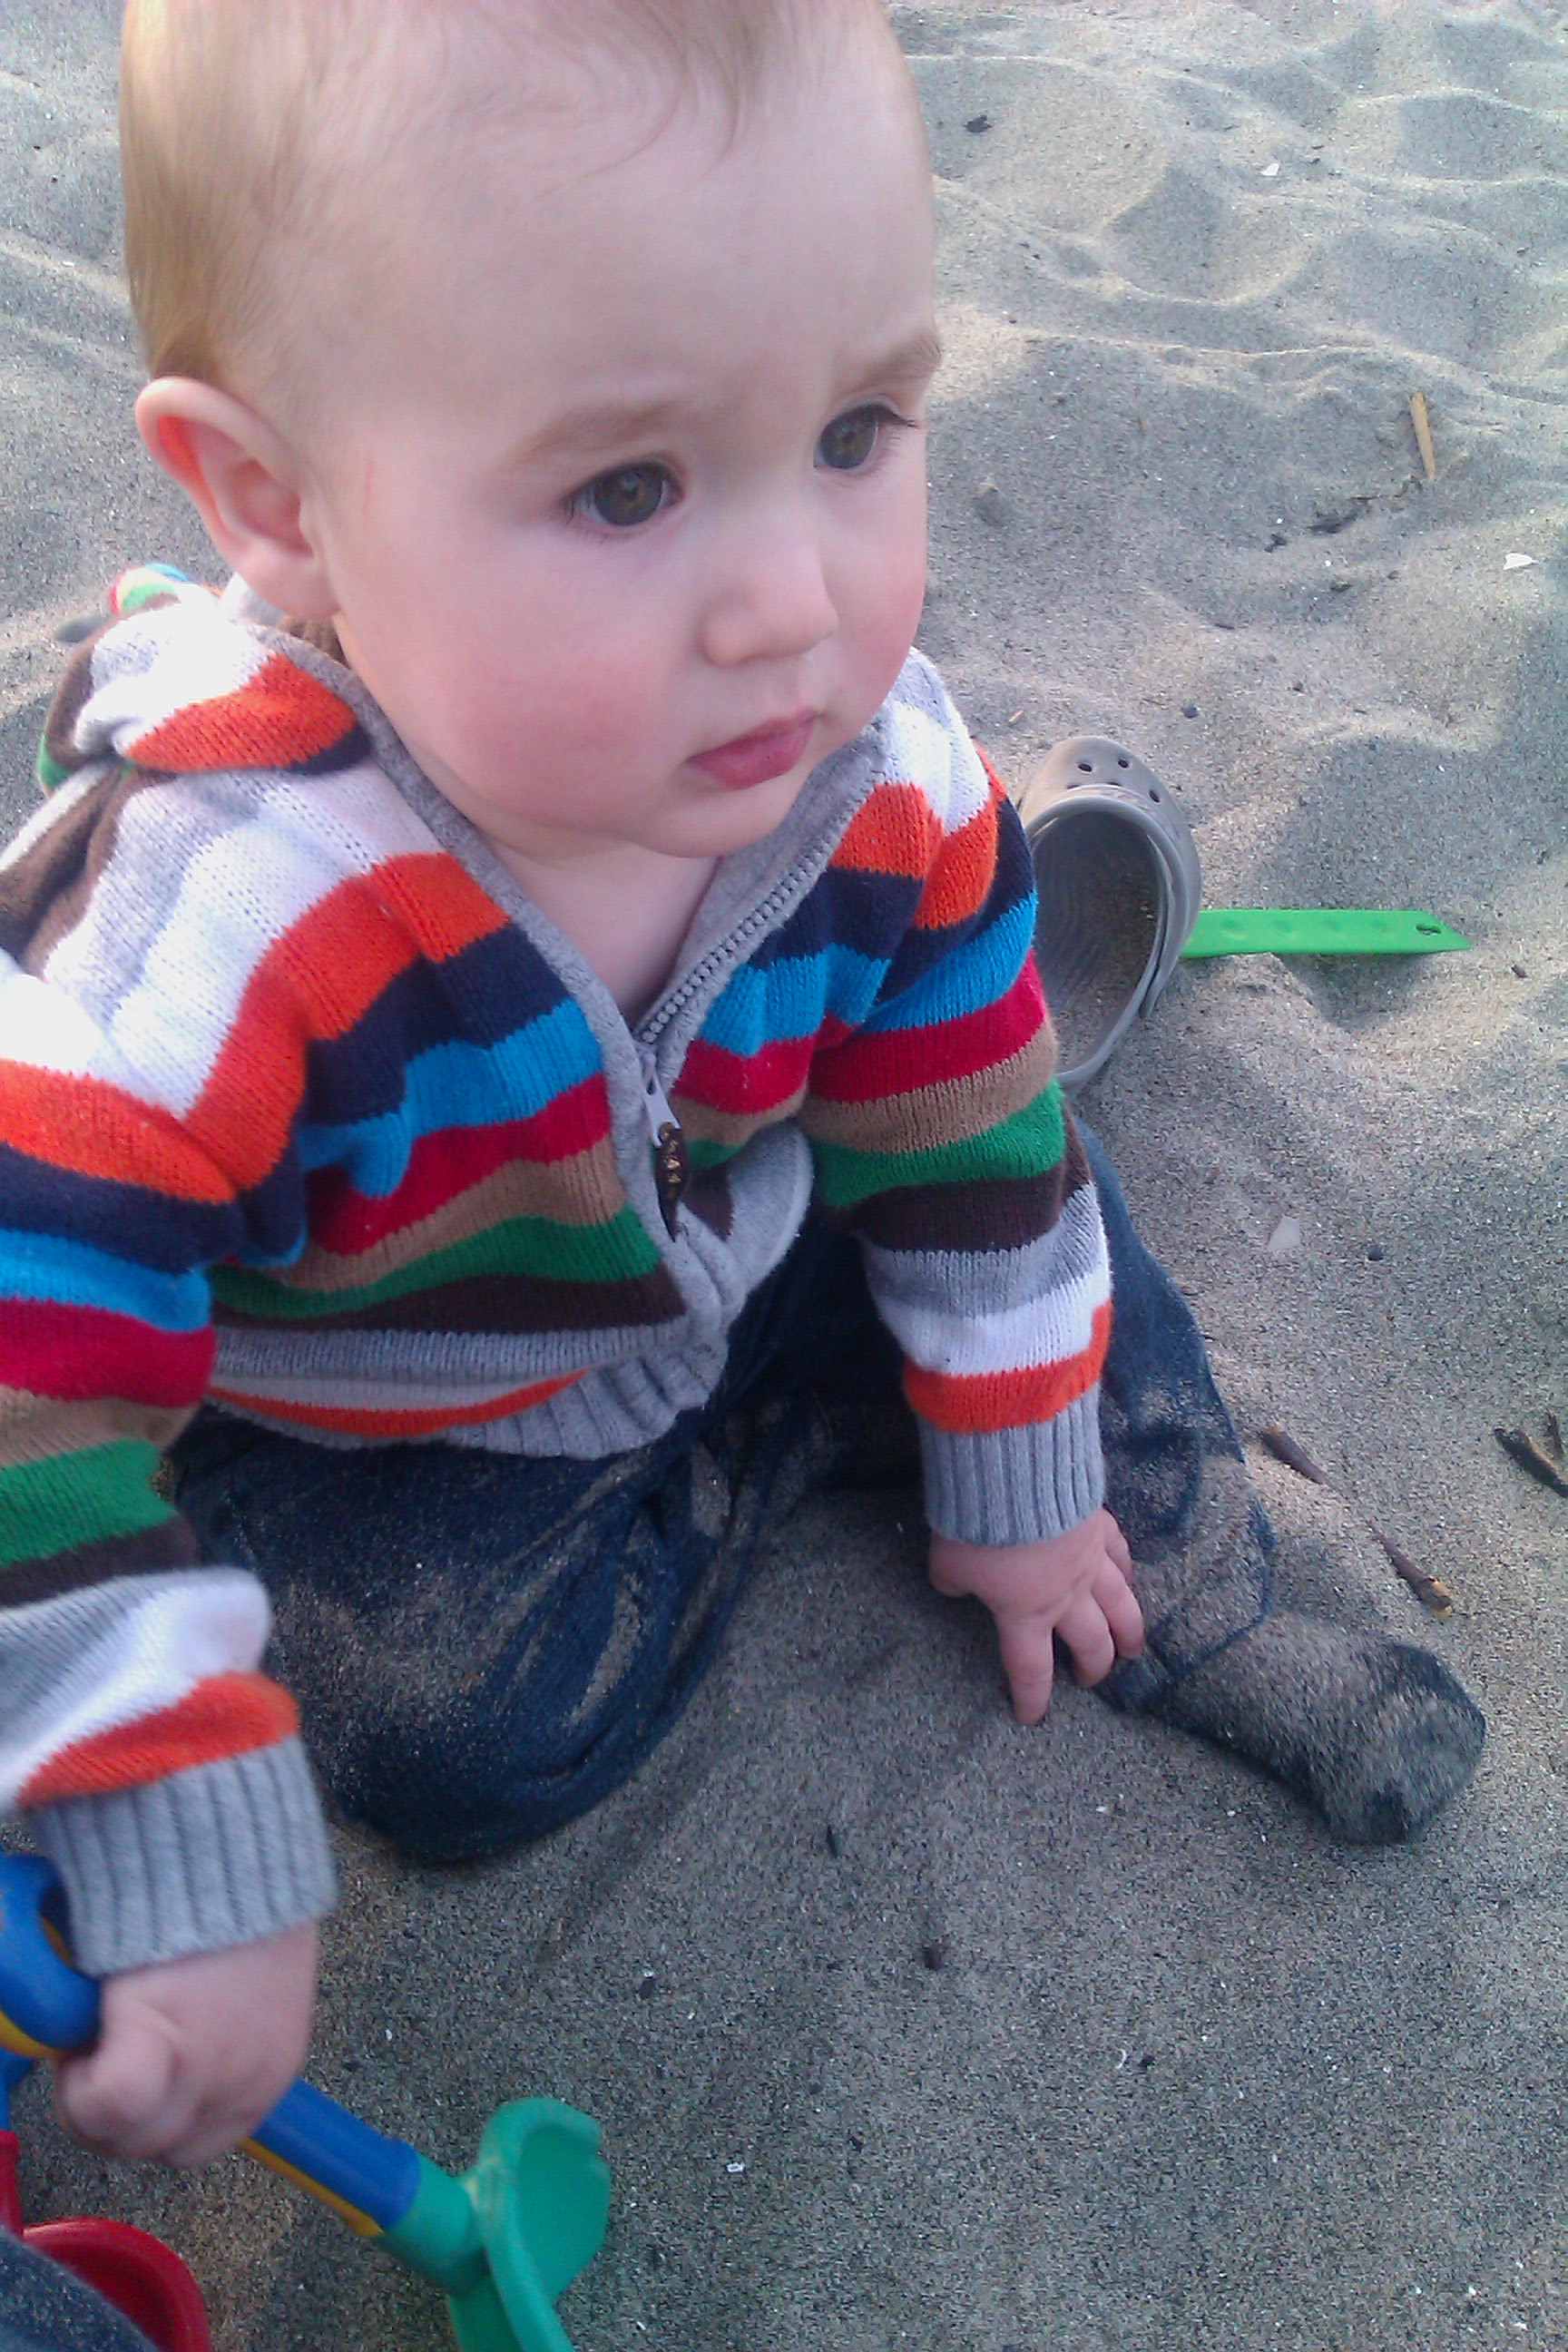 baby crawling on the beach